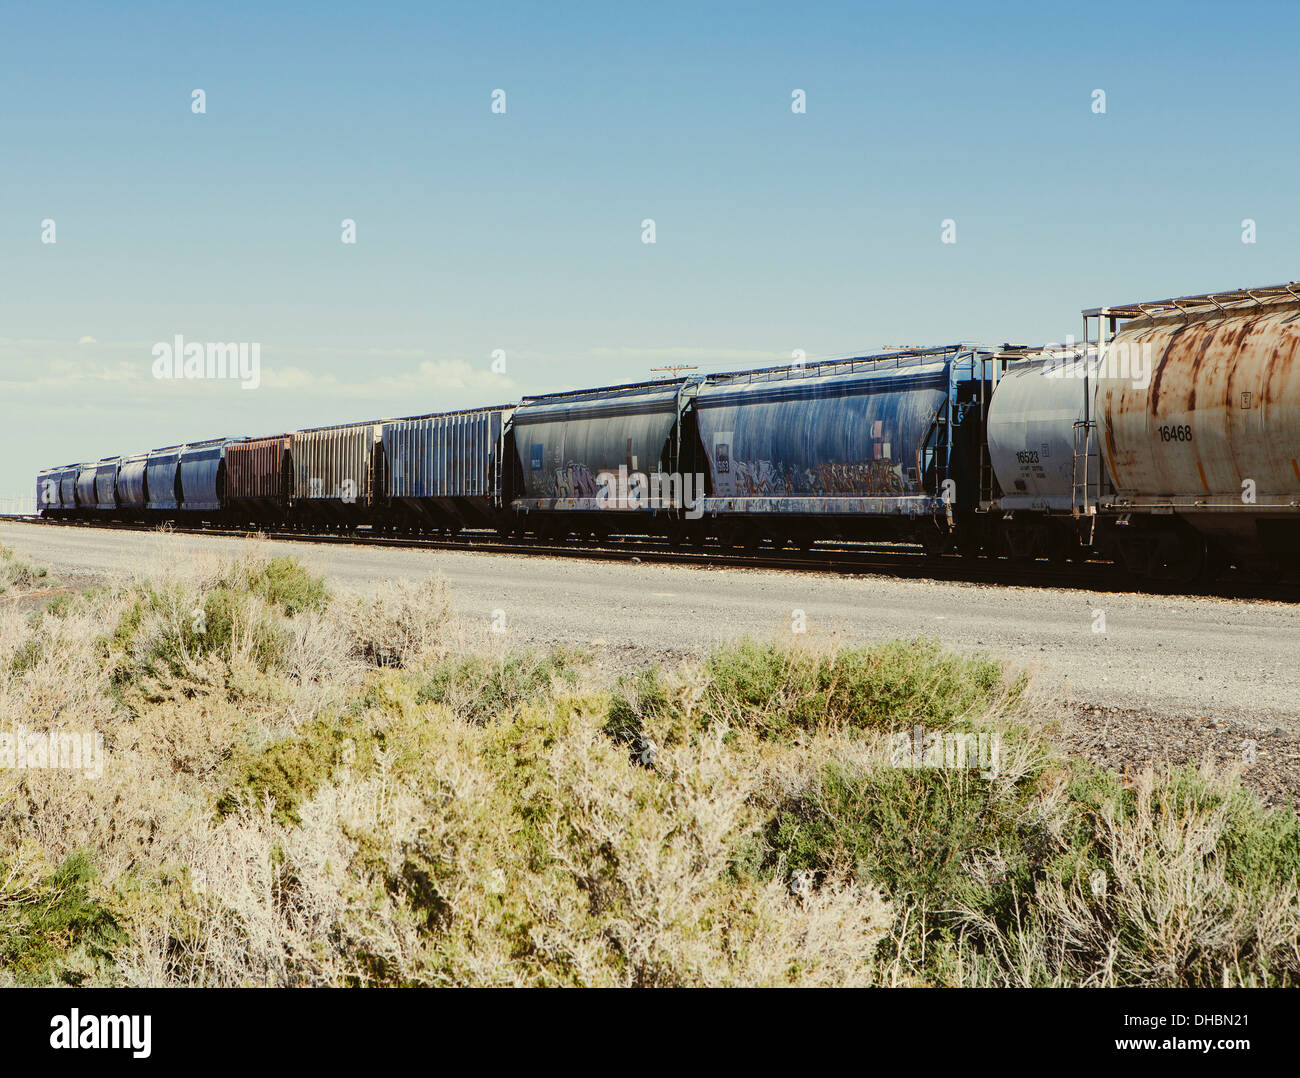 Row of container freight wagons of a freight train crossing the plains near Wendover. Scrubby sage bushes growing - Stock Image